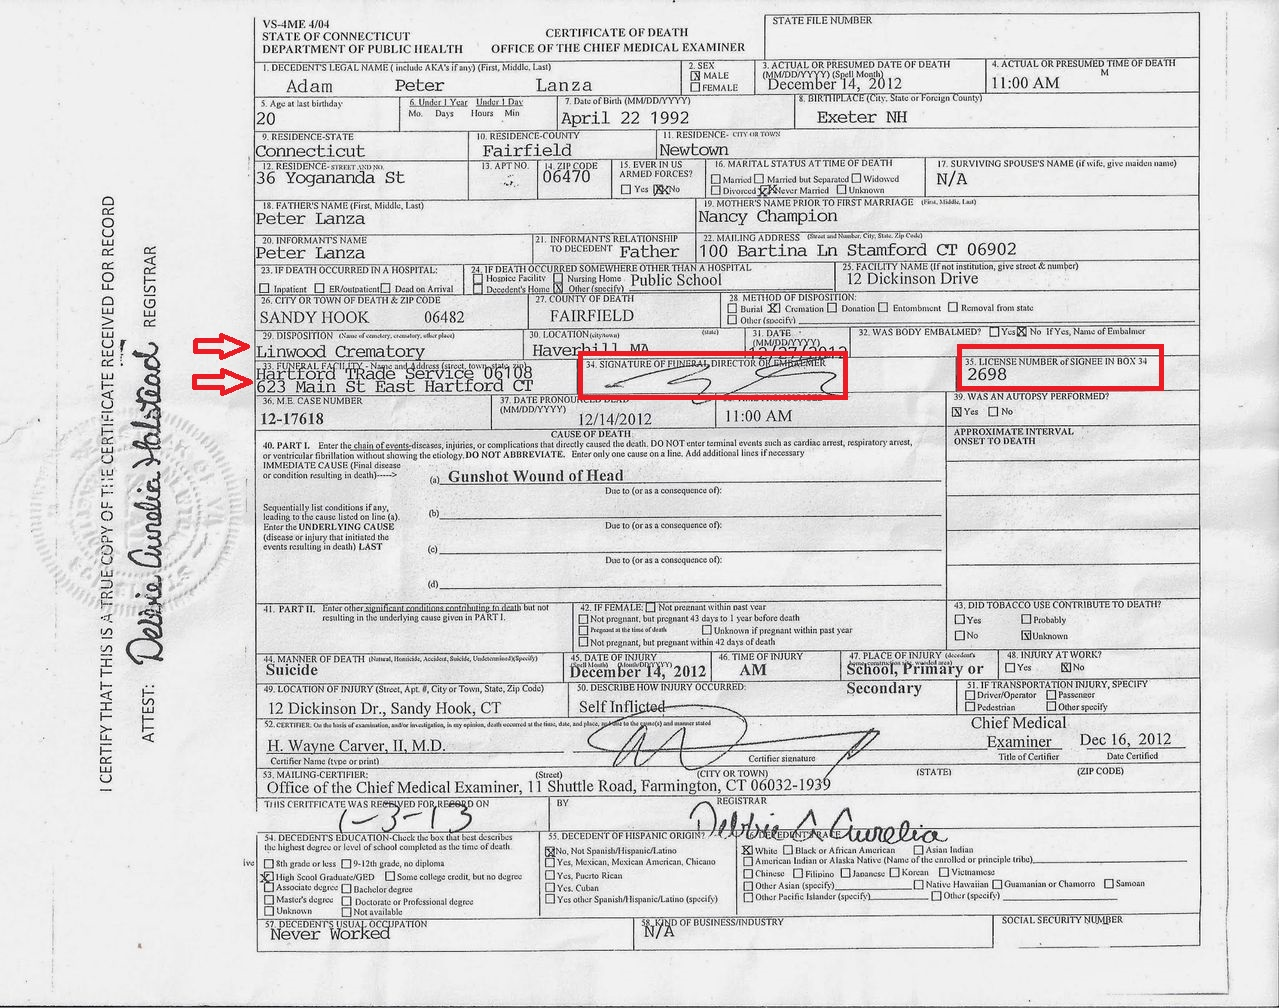 Unlicensed Funeral Home and Adam Lanza